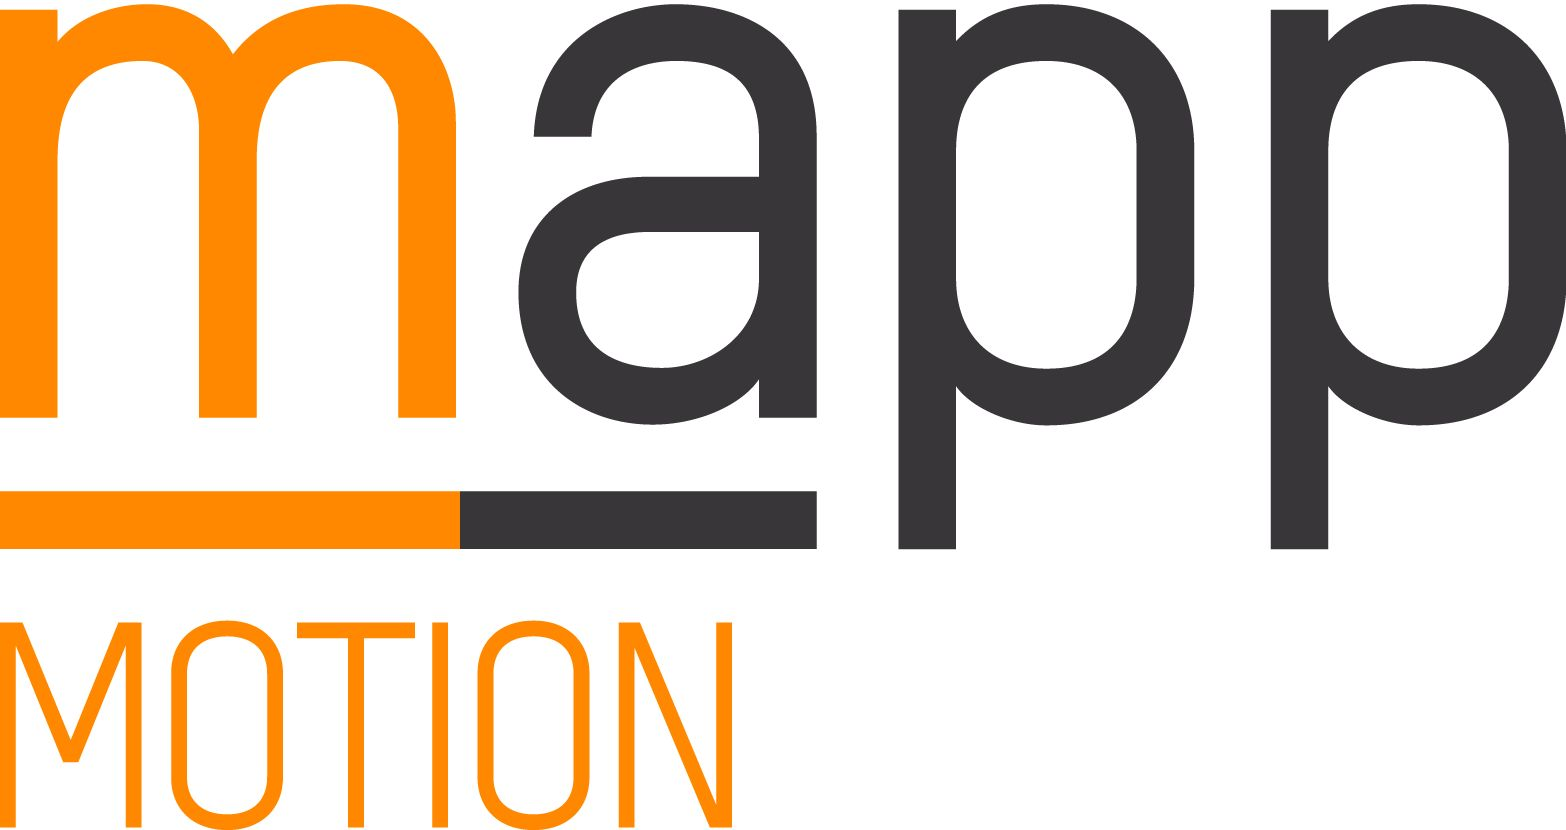 mapp Motion - Develop motion control applications faster